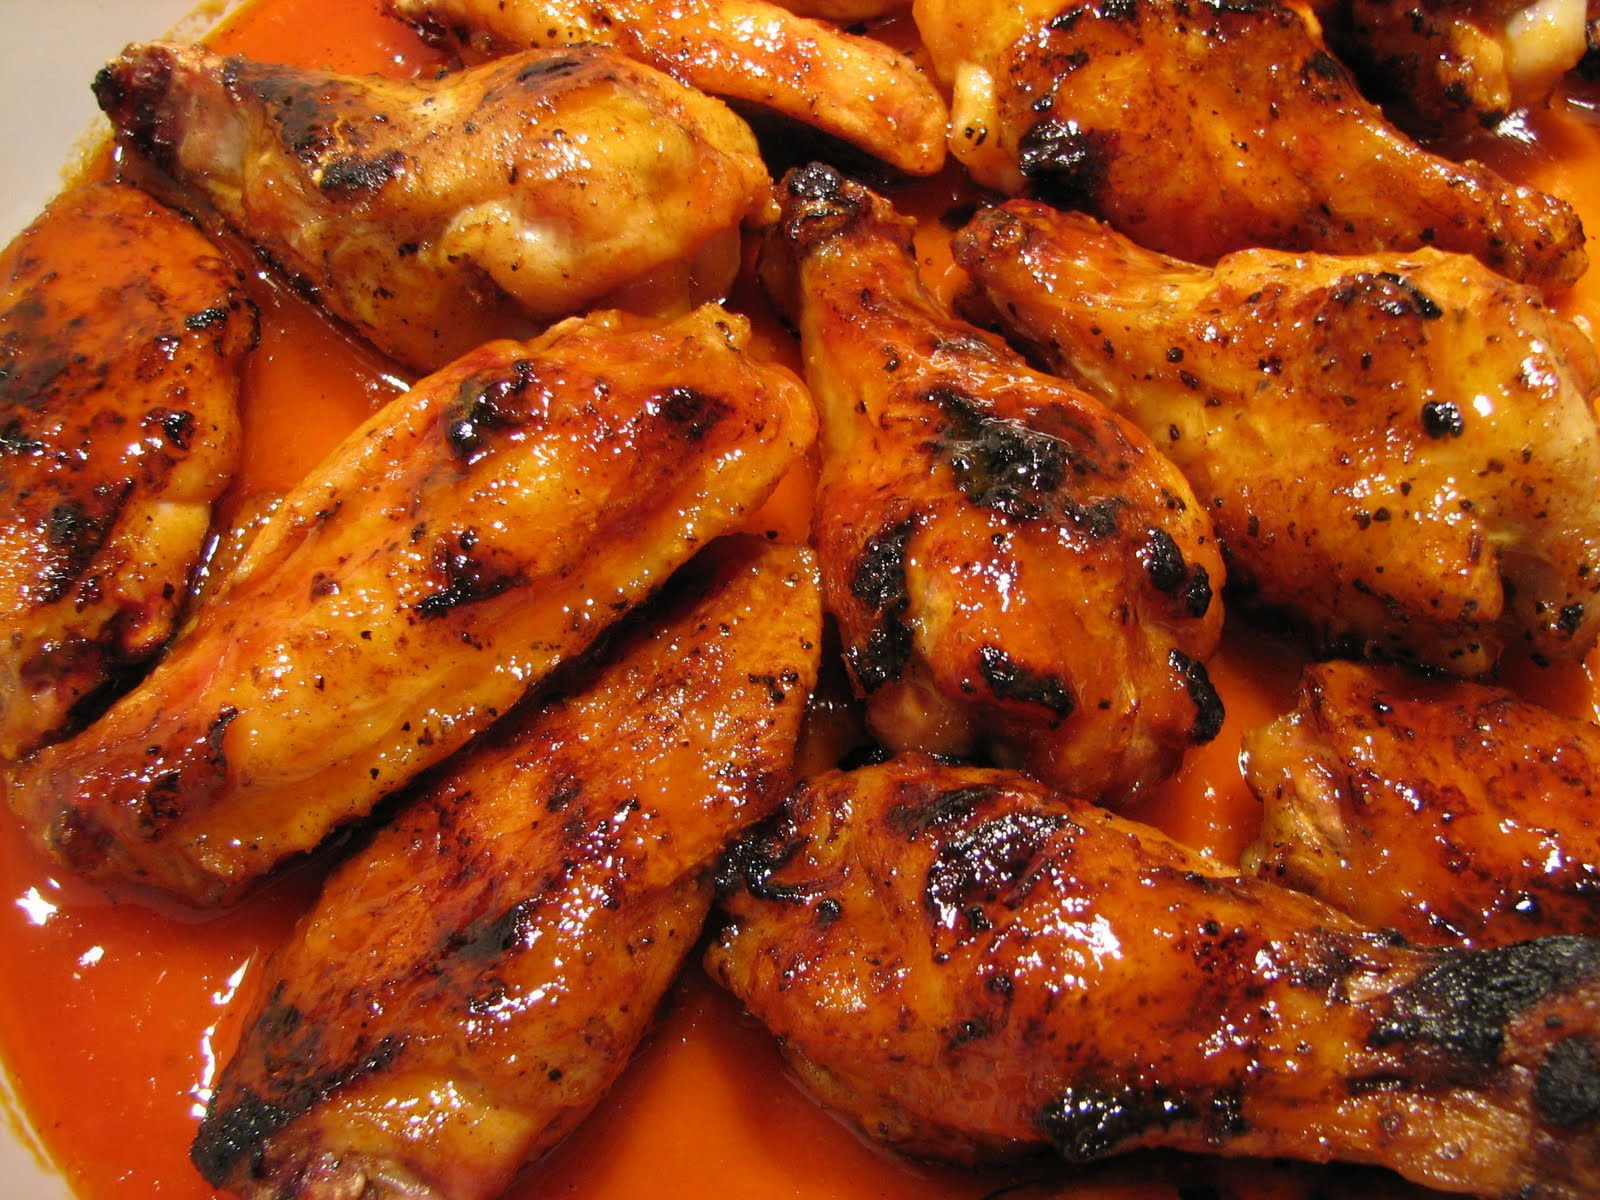 ... Recipe Box: Buffalo Chicken Wings! On the Grill or in the Oven